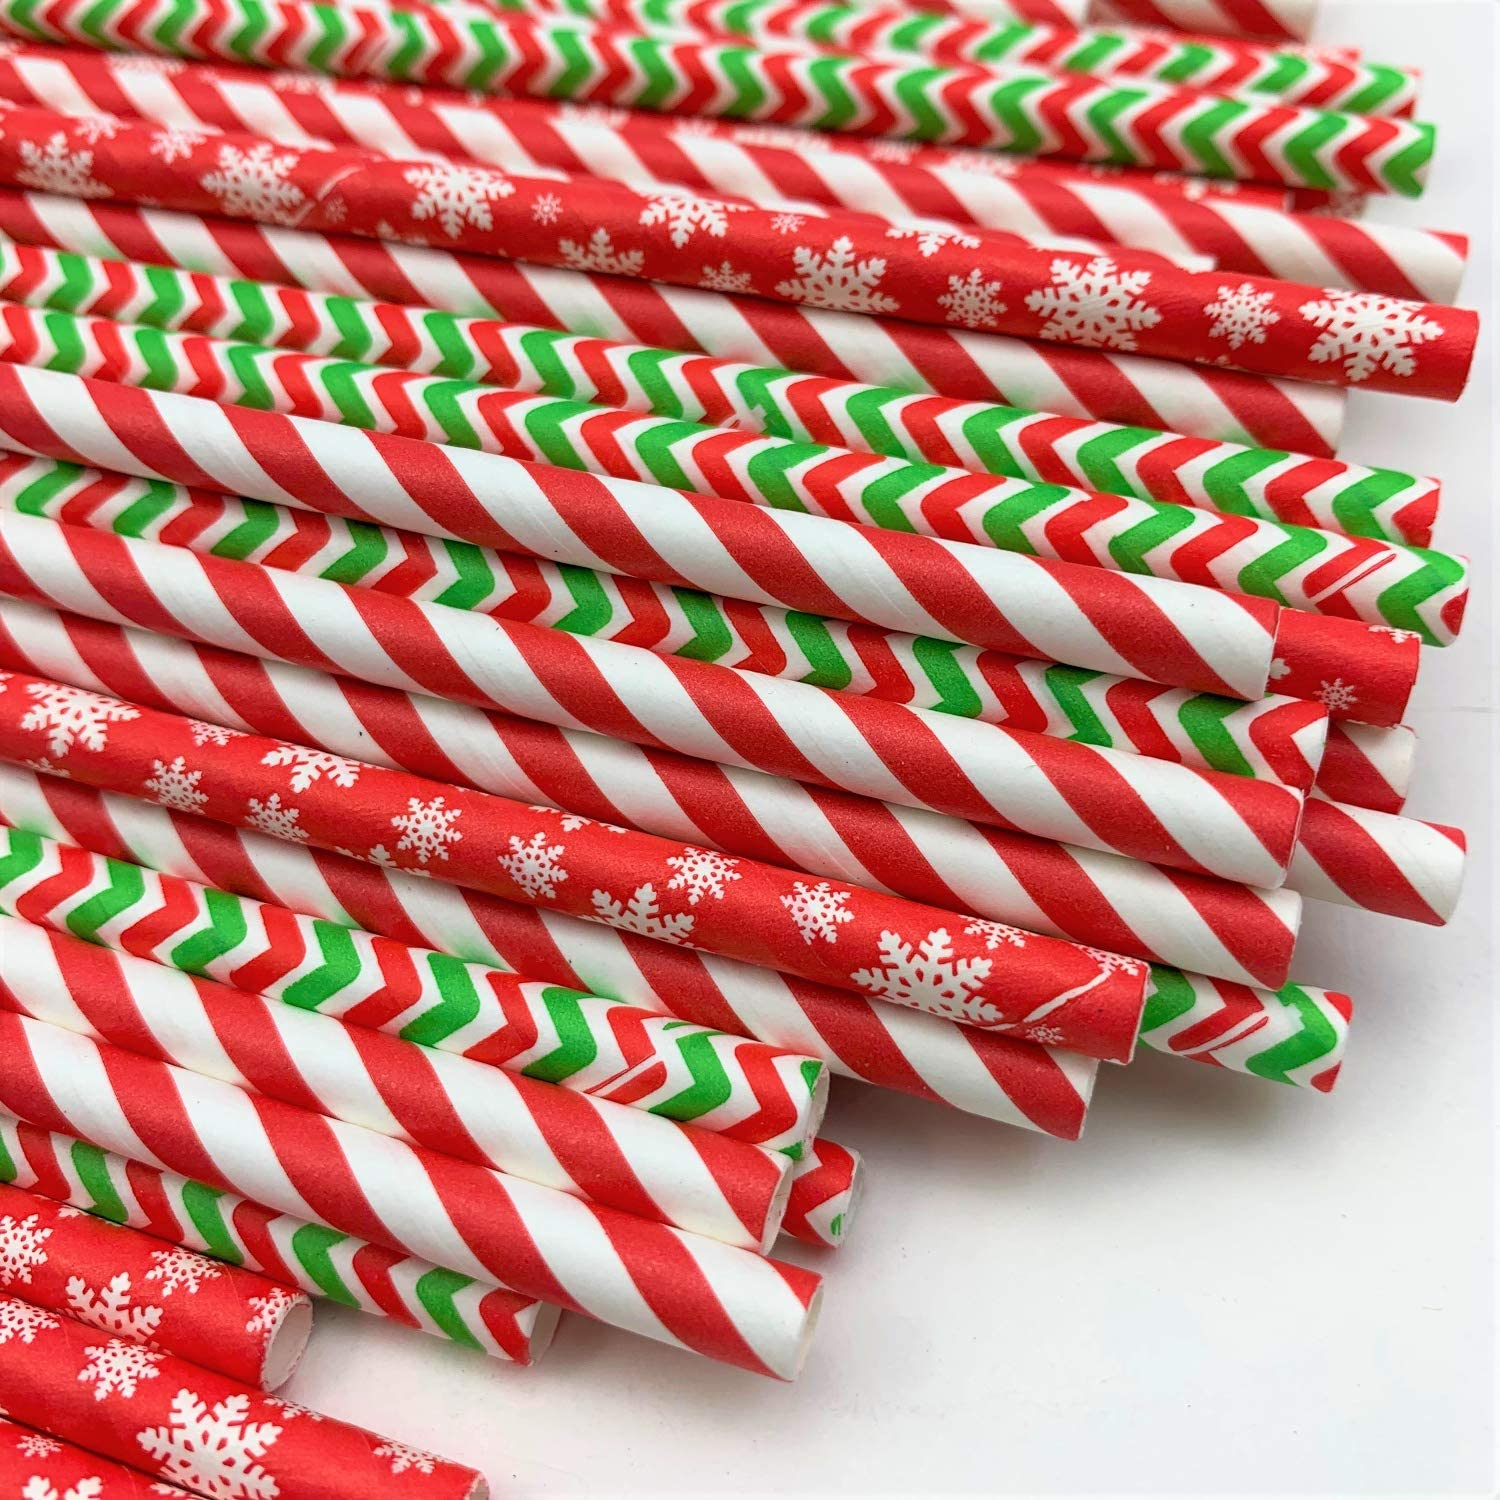 Christmas Paper Straws for Drinking (Pack of 75) Snowflakes, Candy Cane Stripes, & Green and Red Zig Zags Biodegradable Eco Friendly Disposable Party Straws for Holiday Party & Events. Design #2